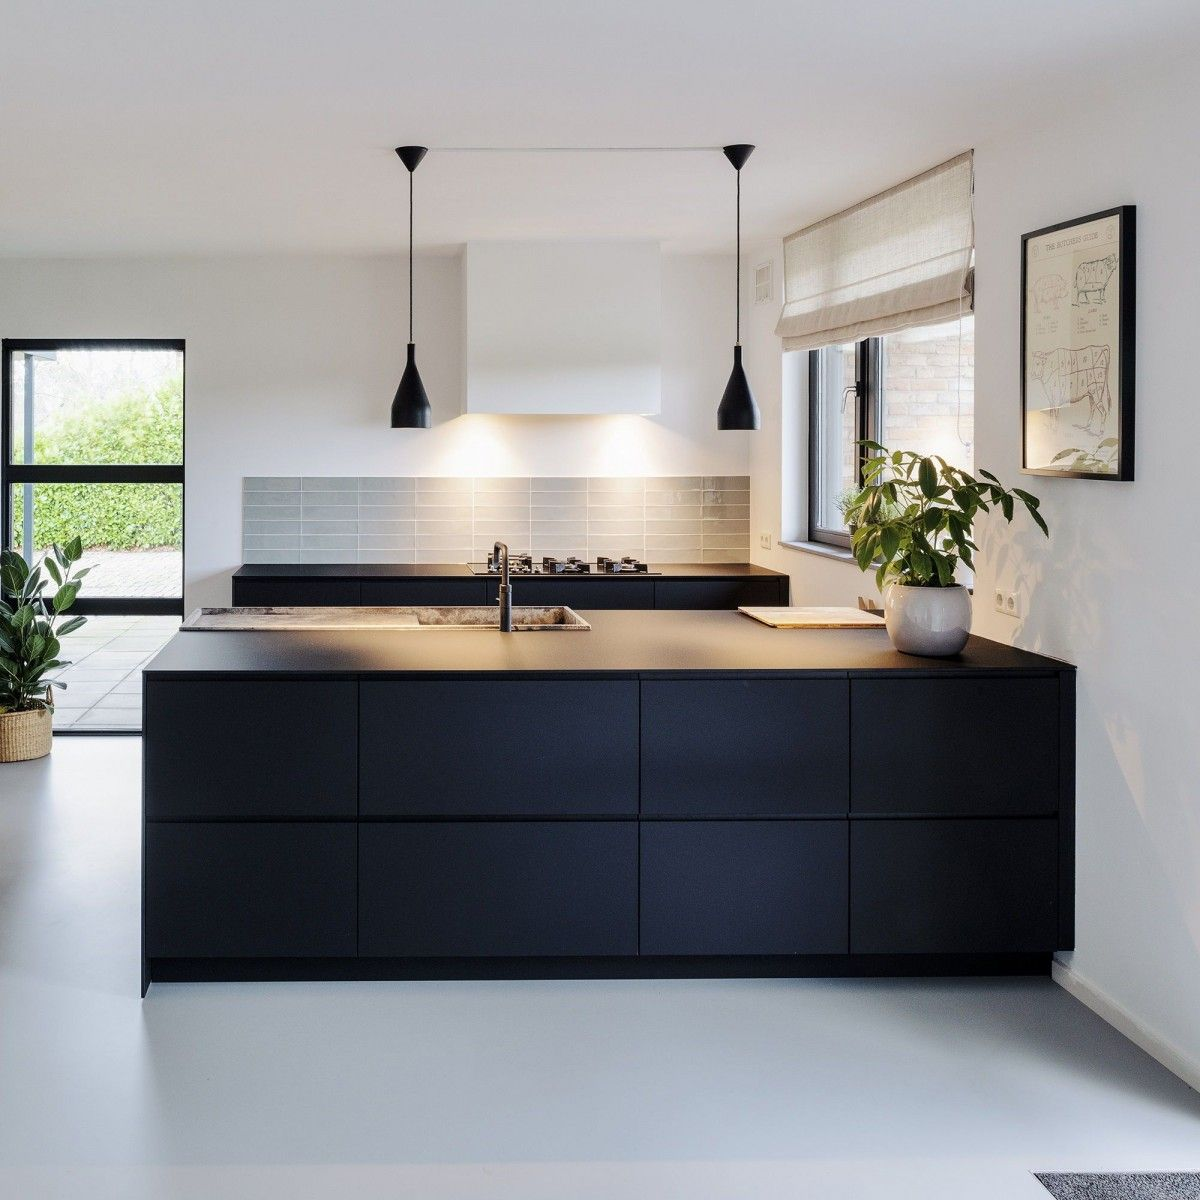 Modern Furniture Small Kitchen Decorating Design Ideas 2011: Scandinavian Kitchen Ideas (Pros, Cons And Decor Ideas) In